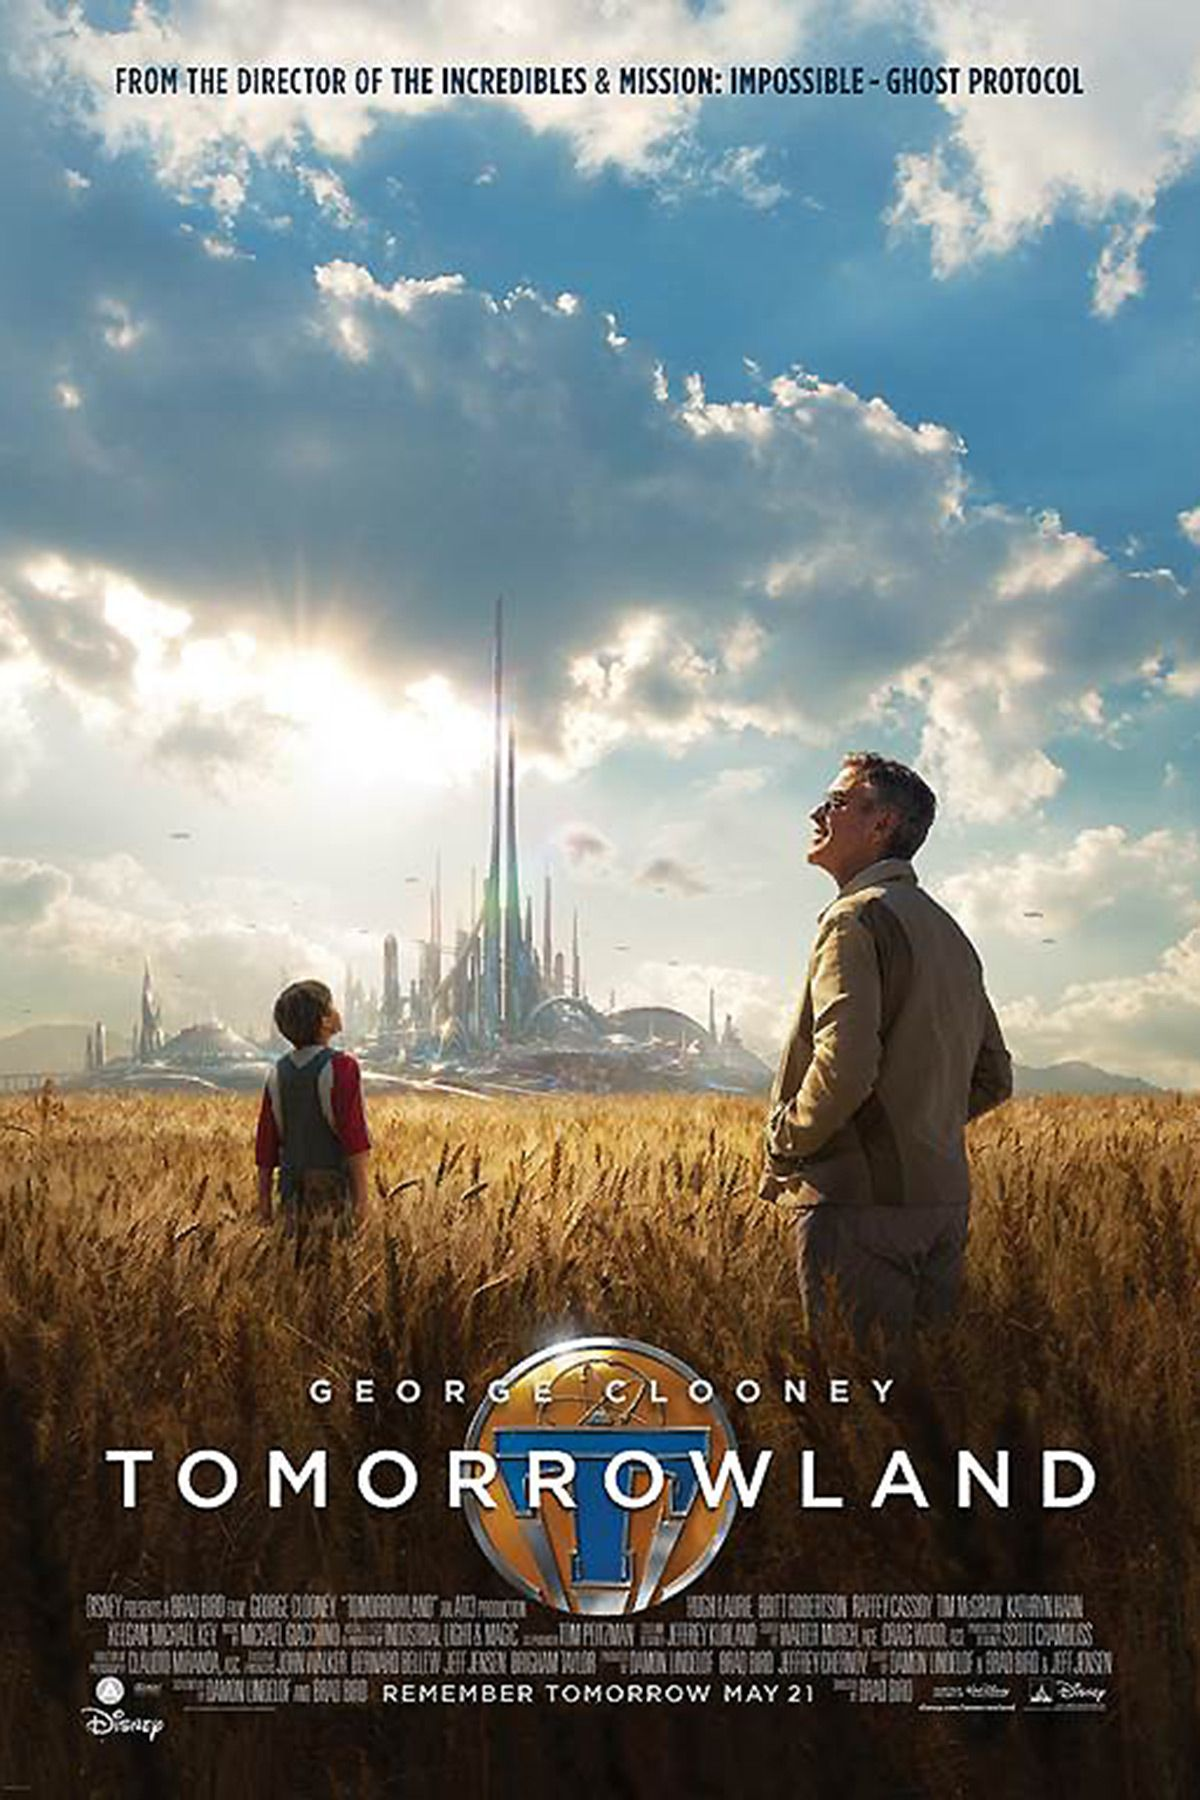 Tomorrowland (2015) by Brad Bird 2015 Movie Posters